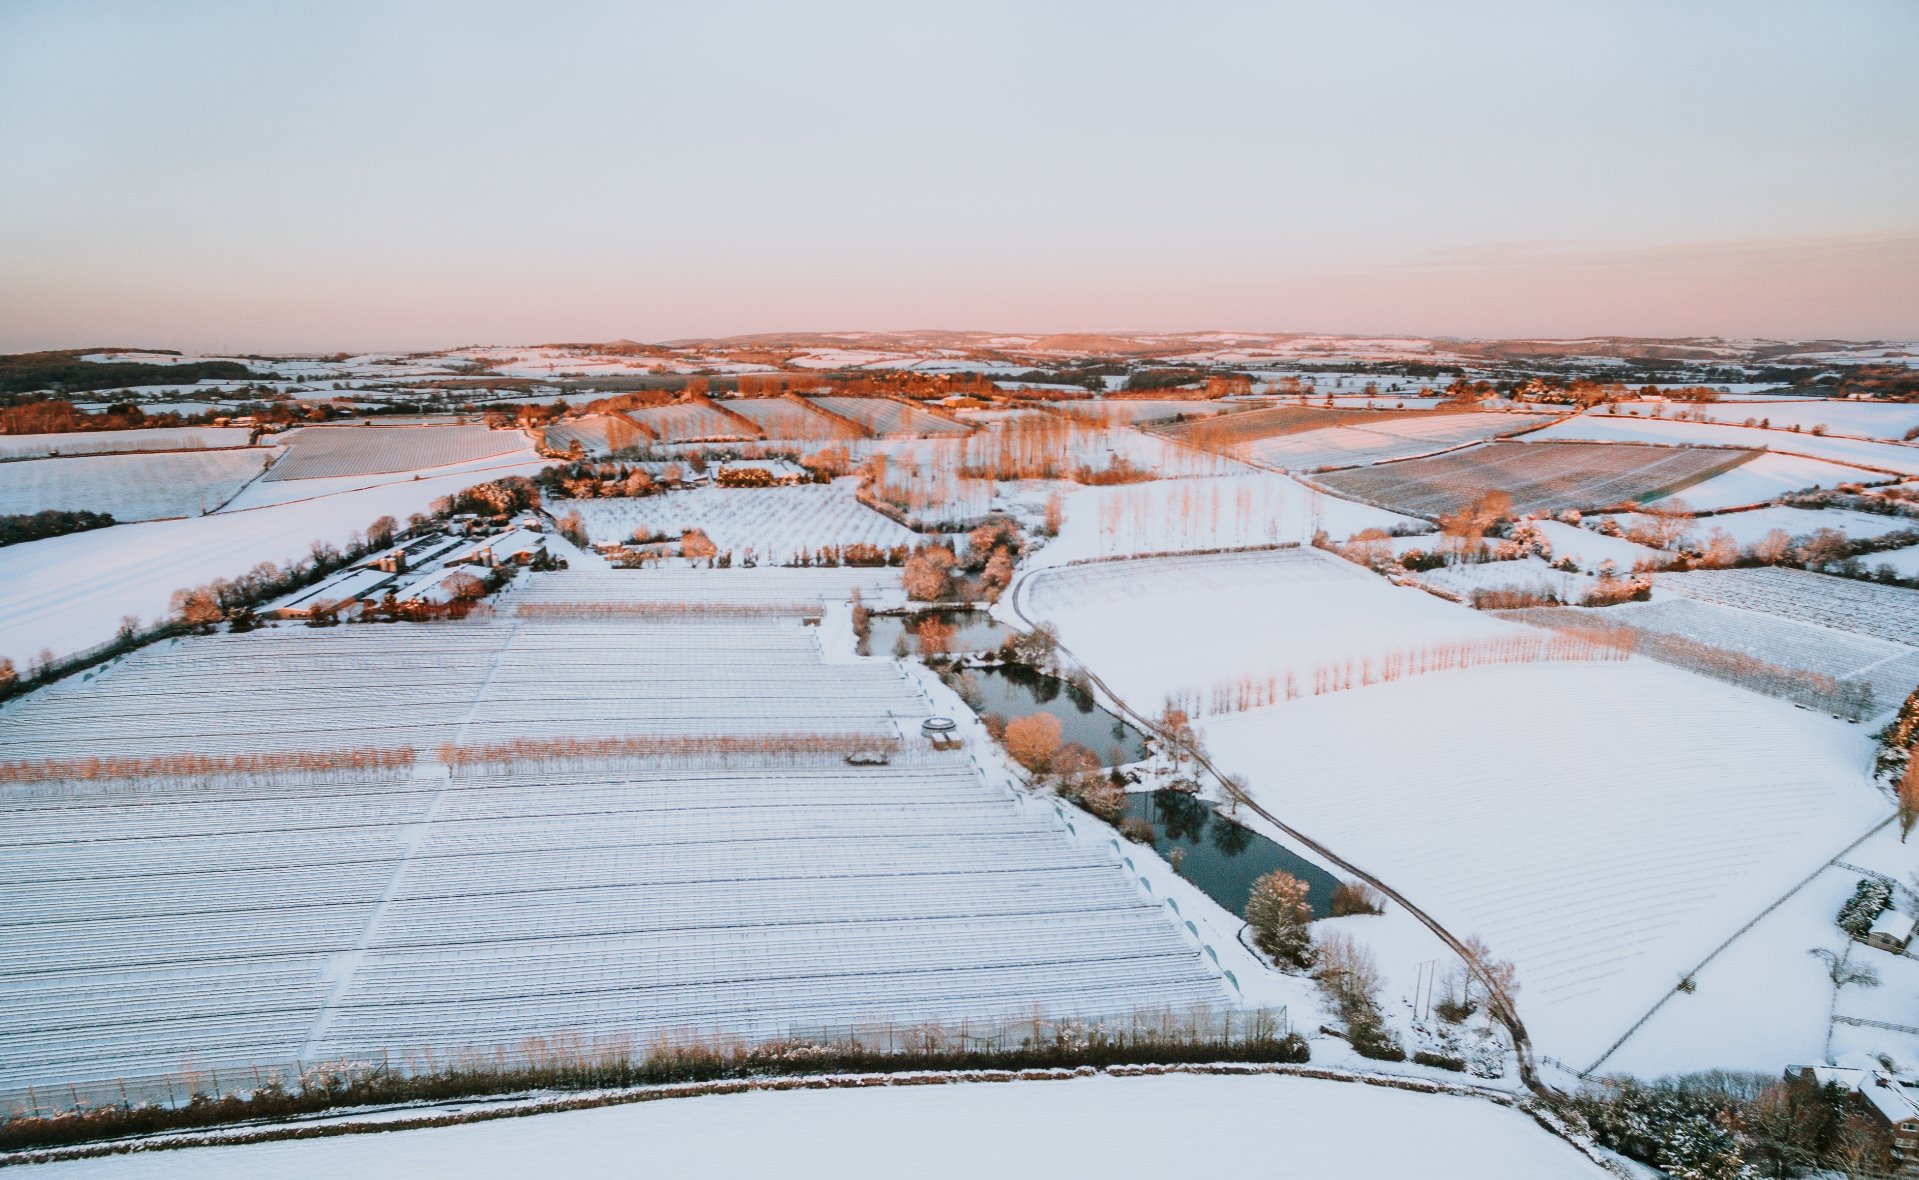 Ariel View in Snow